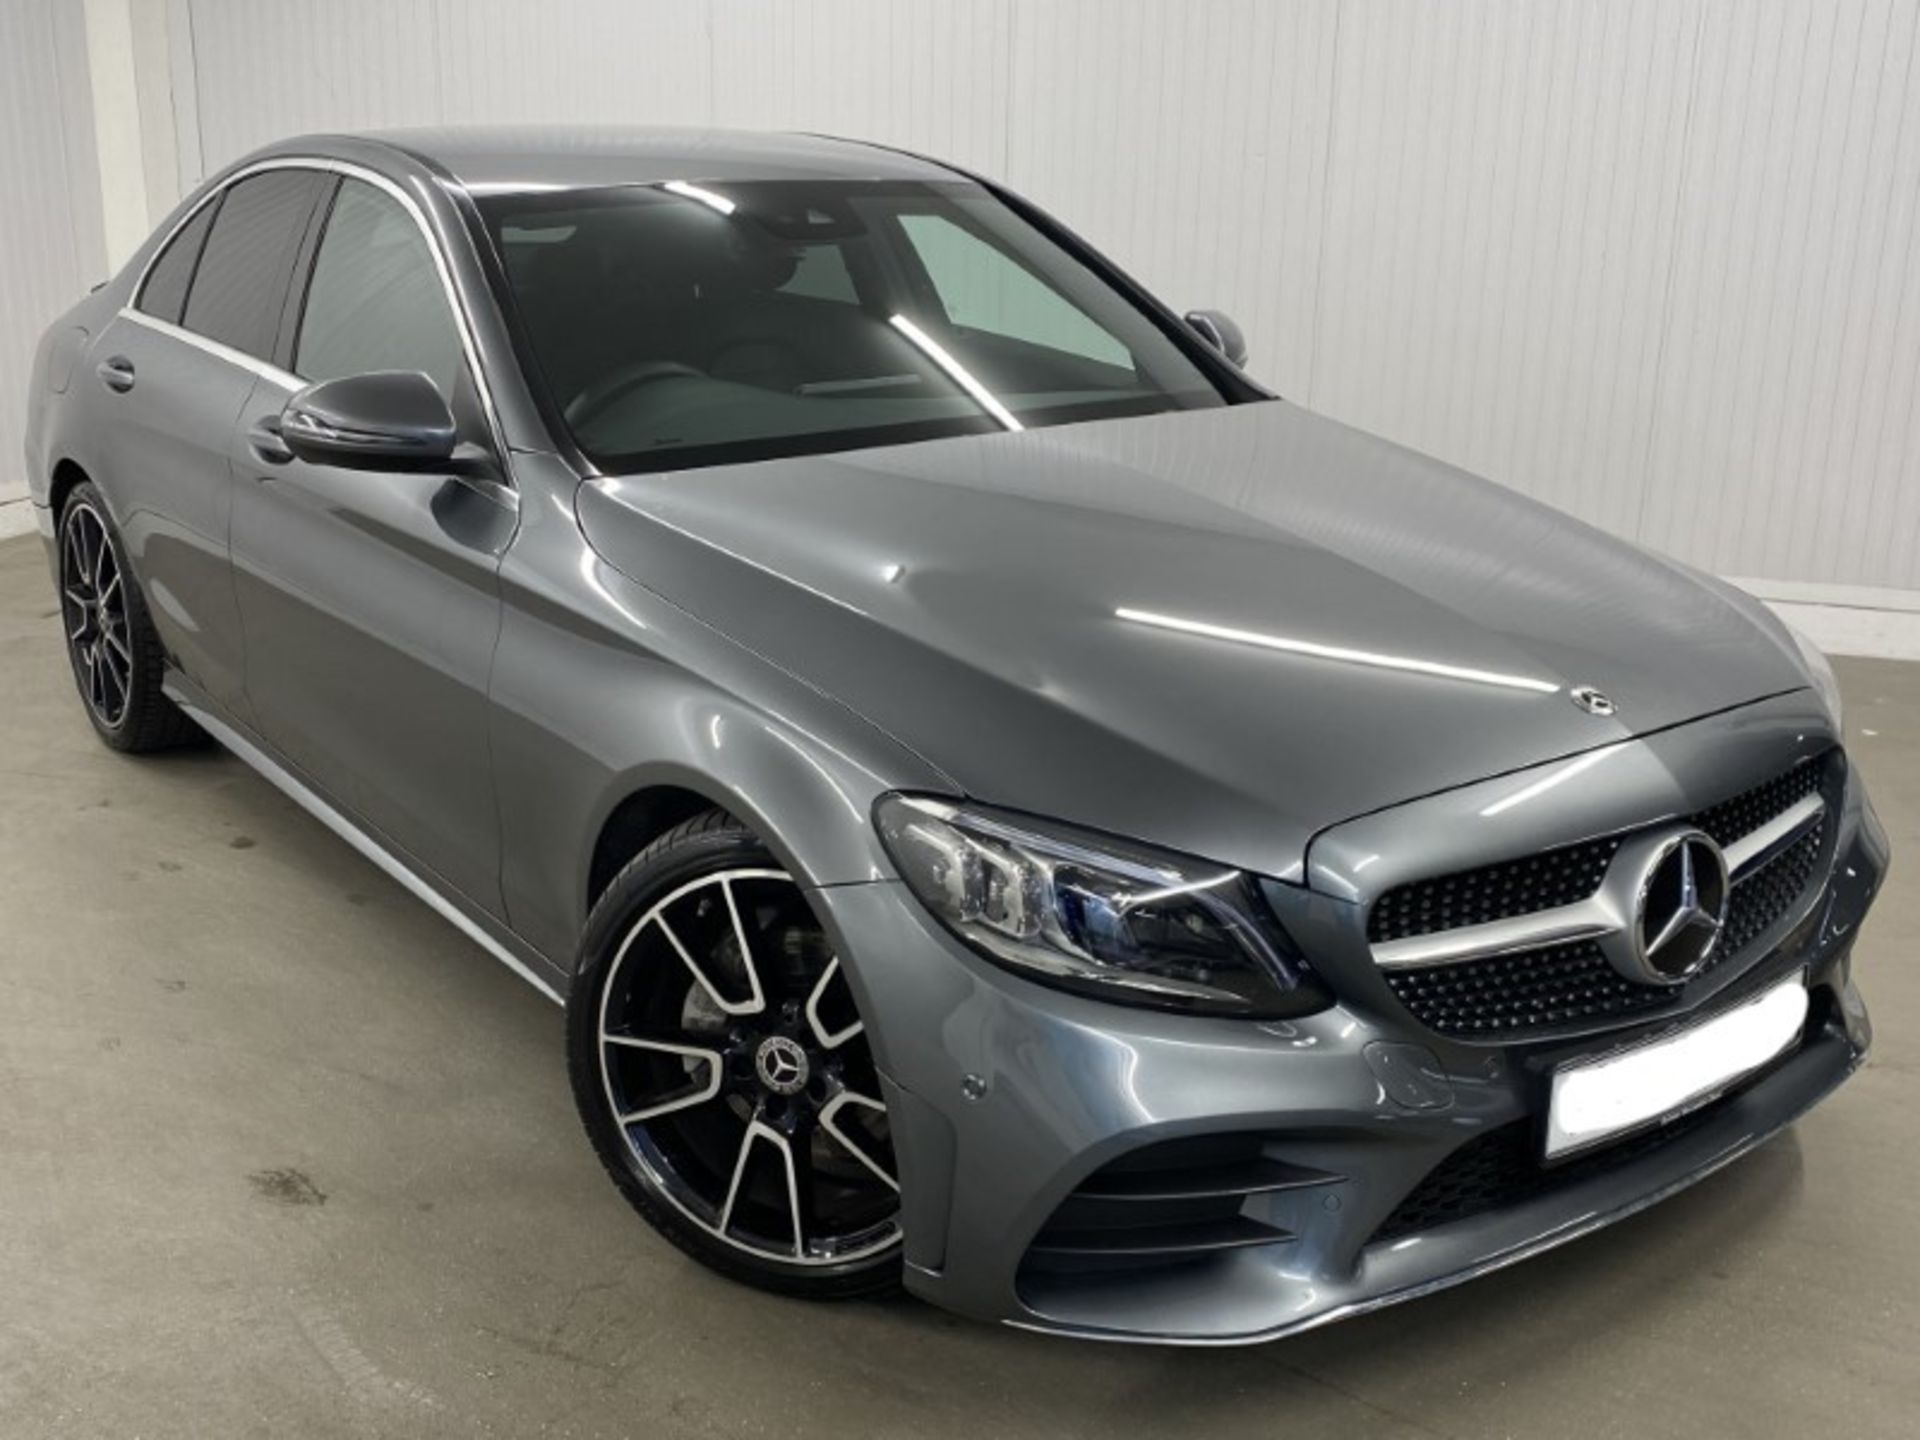 MERCEDES-BENZ C220d *AMG LINE - PREMIUM* SALOON (2021 MODEL) '9-G TRONIC' *LEATHER & NAV* (1 OWNER)